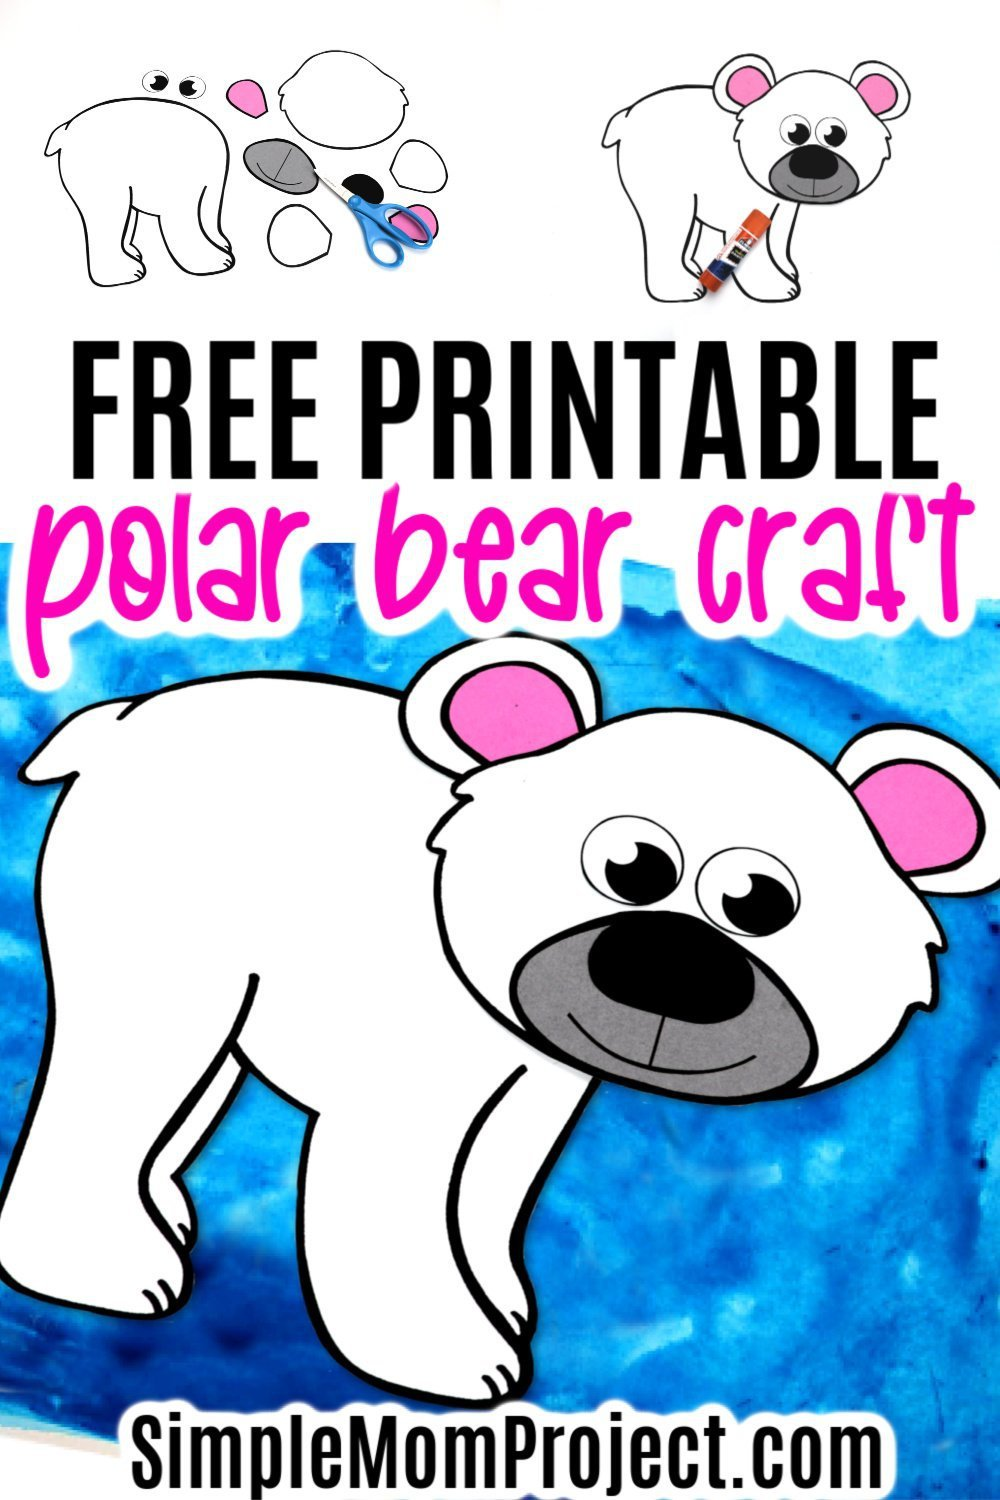 Looking for a fun and easy arctic animal craft idea to do with your preschooler this winter? Click to get this free printable polar bear template to make this cut out polar bear craft! With the step-by-step tutorial, this cute polar bear craft is perfect for kids of all ages, including preschoolers, toddlers and kindergartners! #polarbears #polarbearcrafts #arcticanimals #arcticanimalcrafts #SimpleMomProject